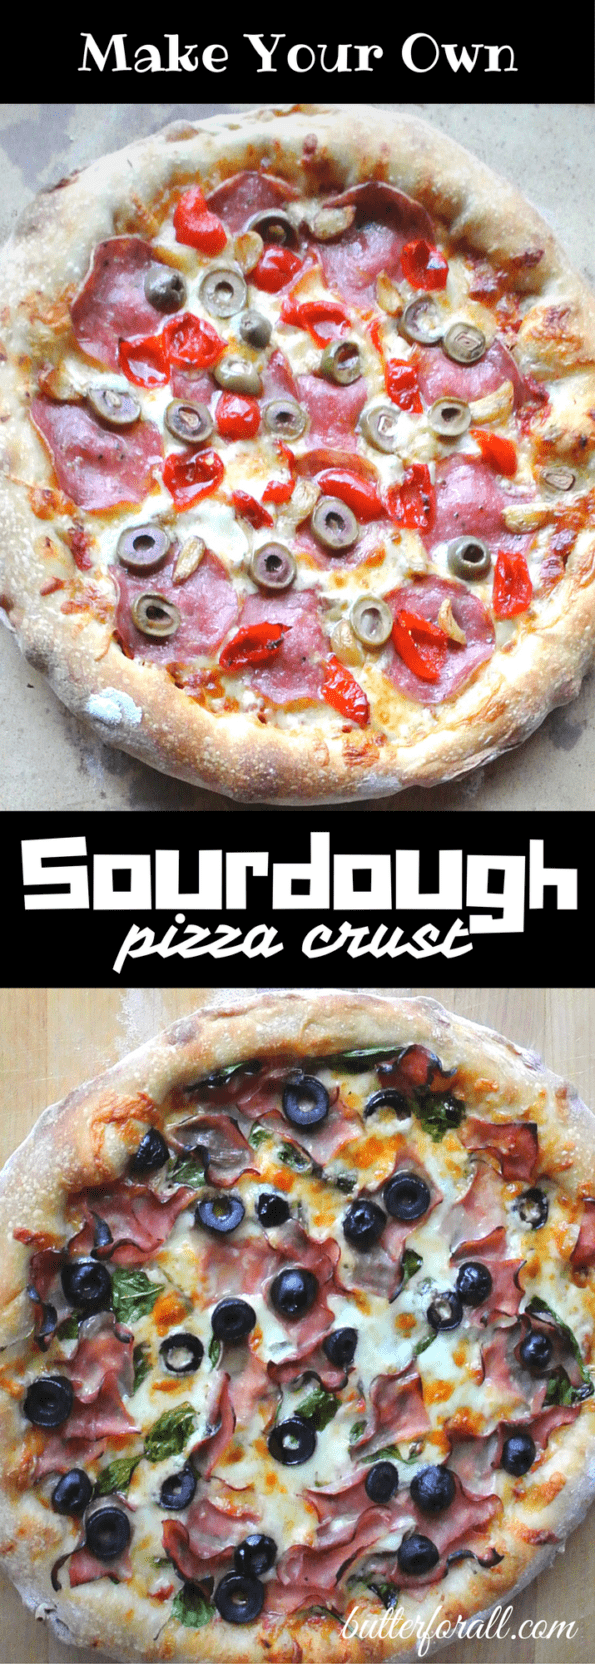 Sourdough pizza collage with text overlay.